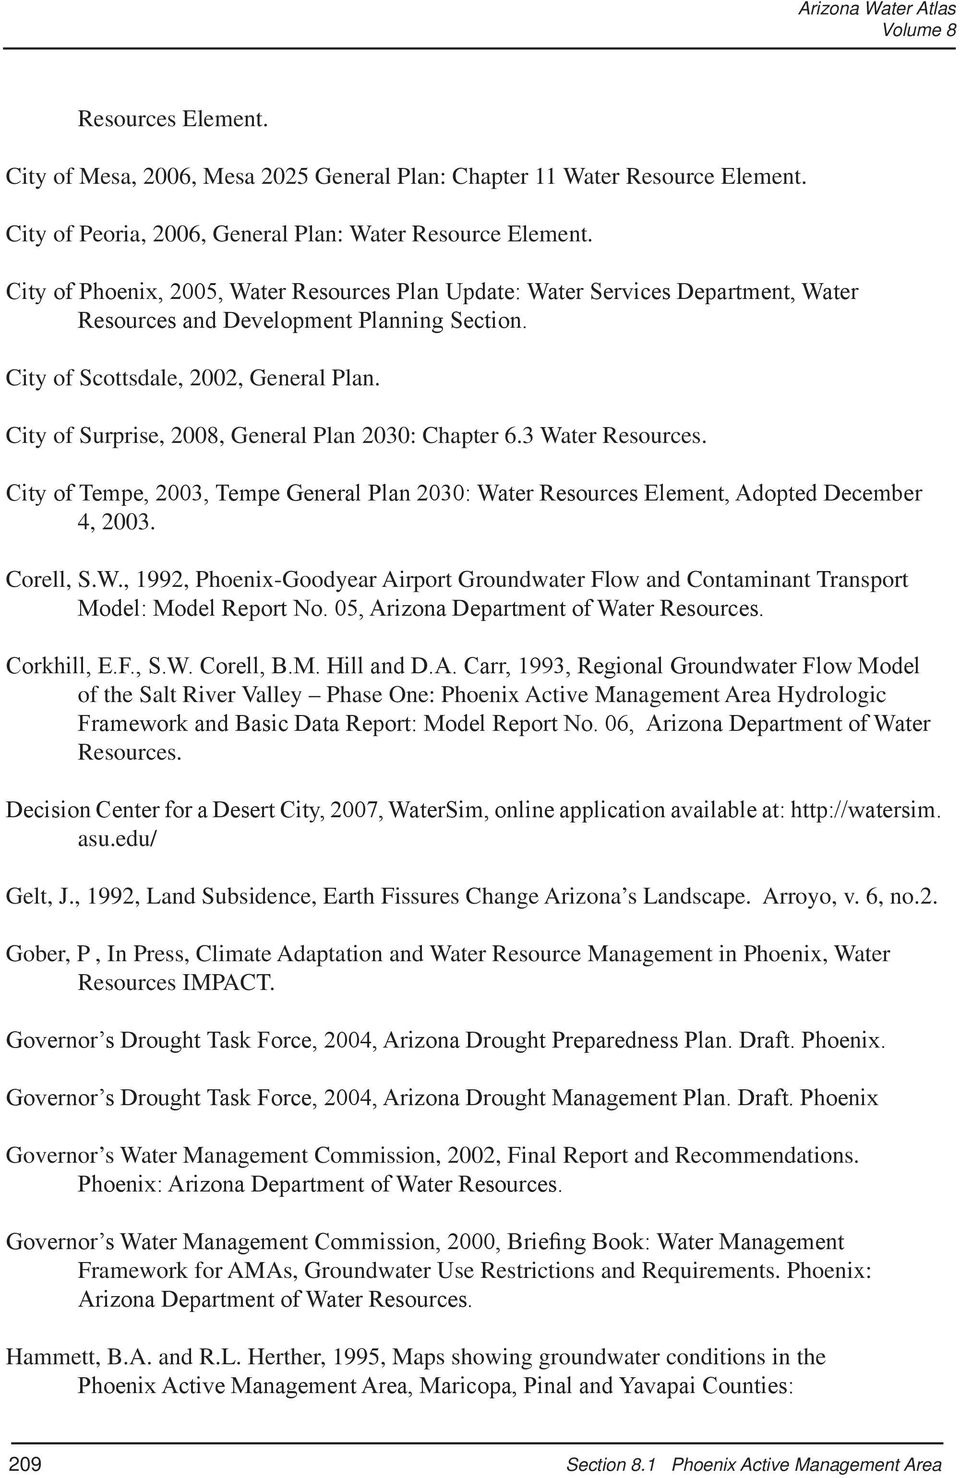 City of Surprise, 2008, General Plan 2030: Chapter 6.3 Water Resources. City of Tempe, 2003, Tempe General Plan 2030: Water Resources Element, Adopted December 4, 2003. Corell, S.W., 1992, Phoenix-Goodyear Airport Groundwater Flow and Contaminant Transport Model: Model Report No.